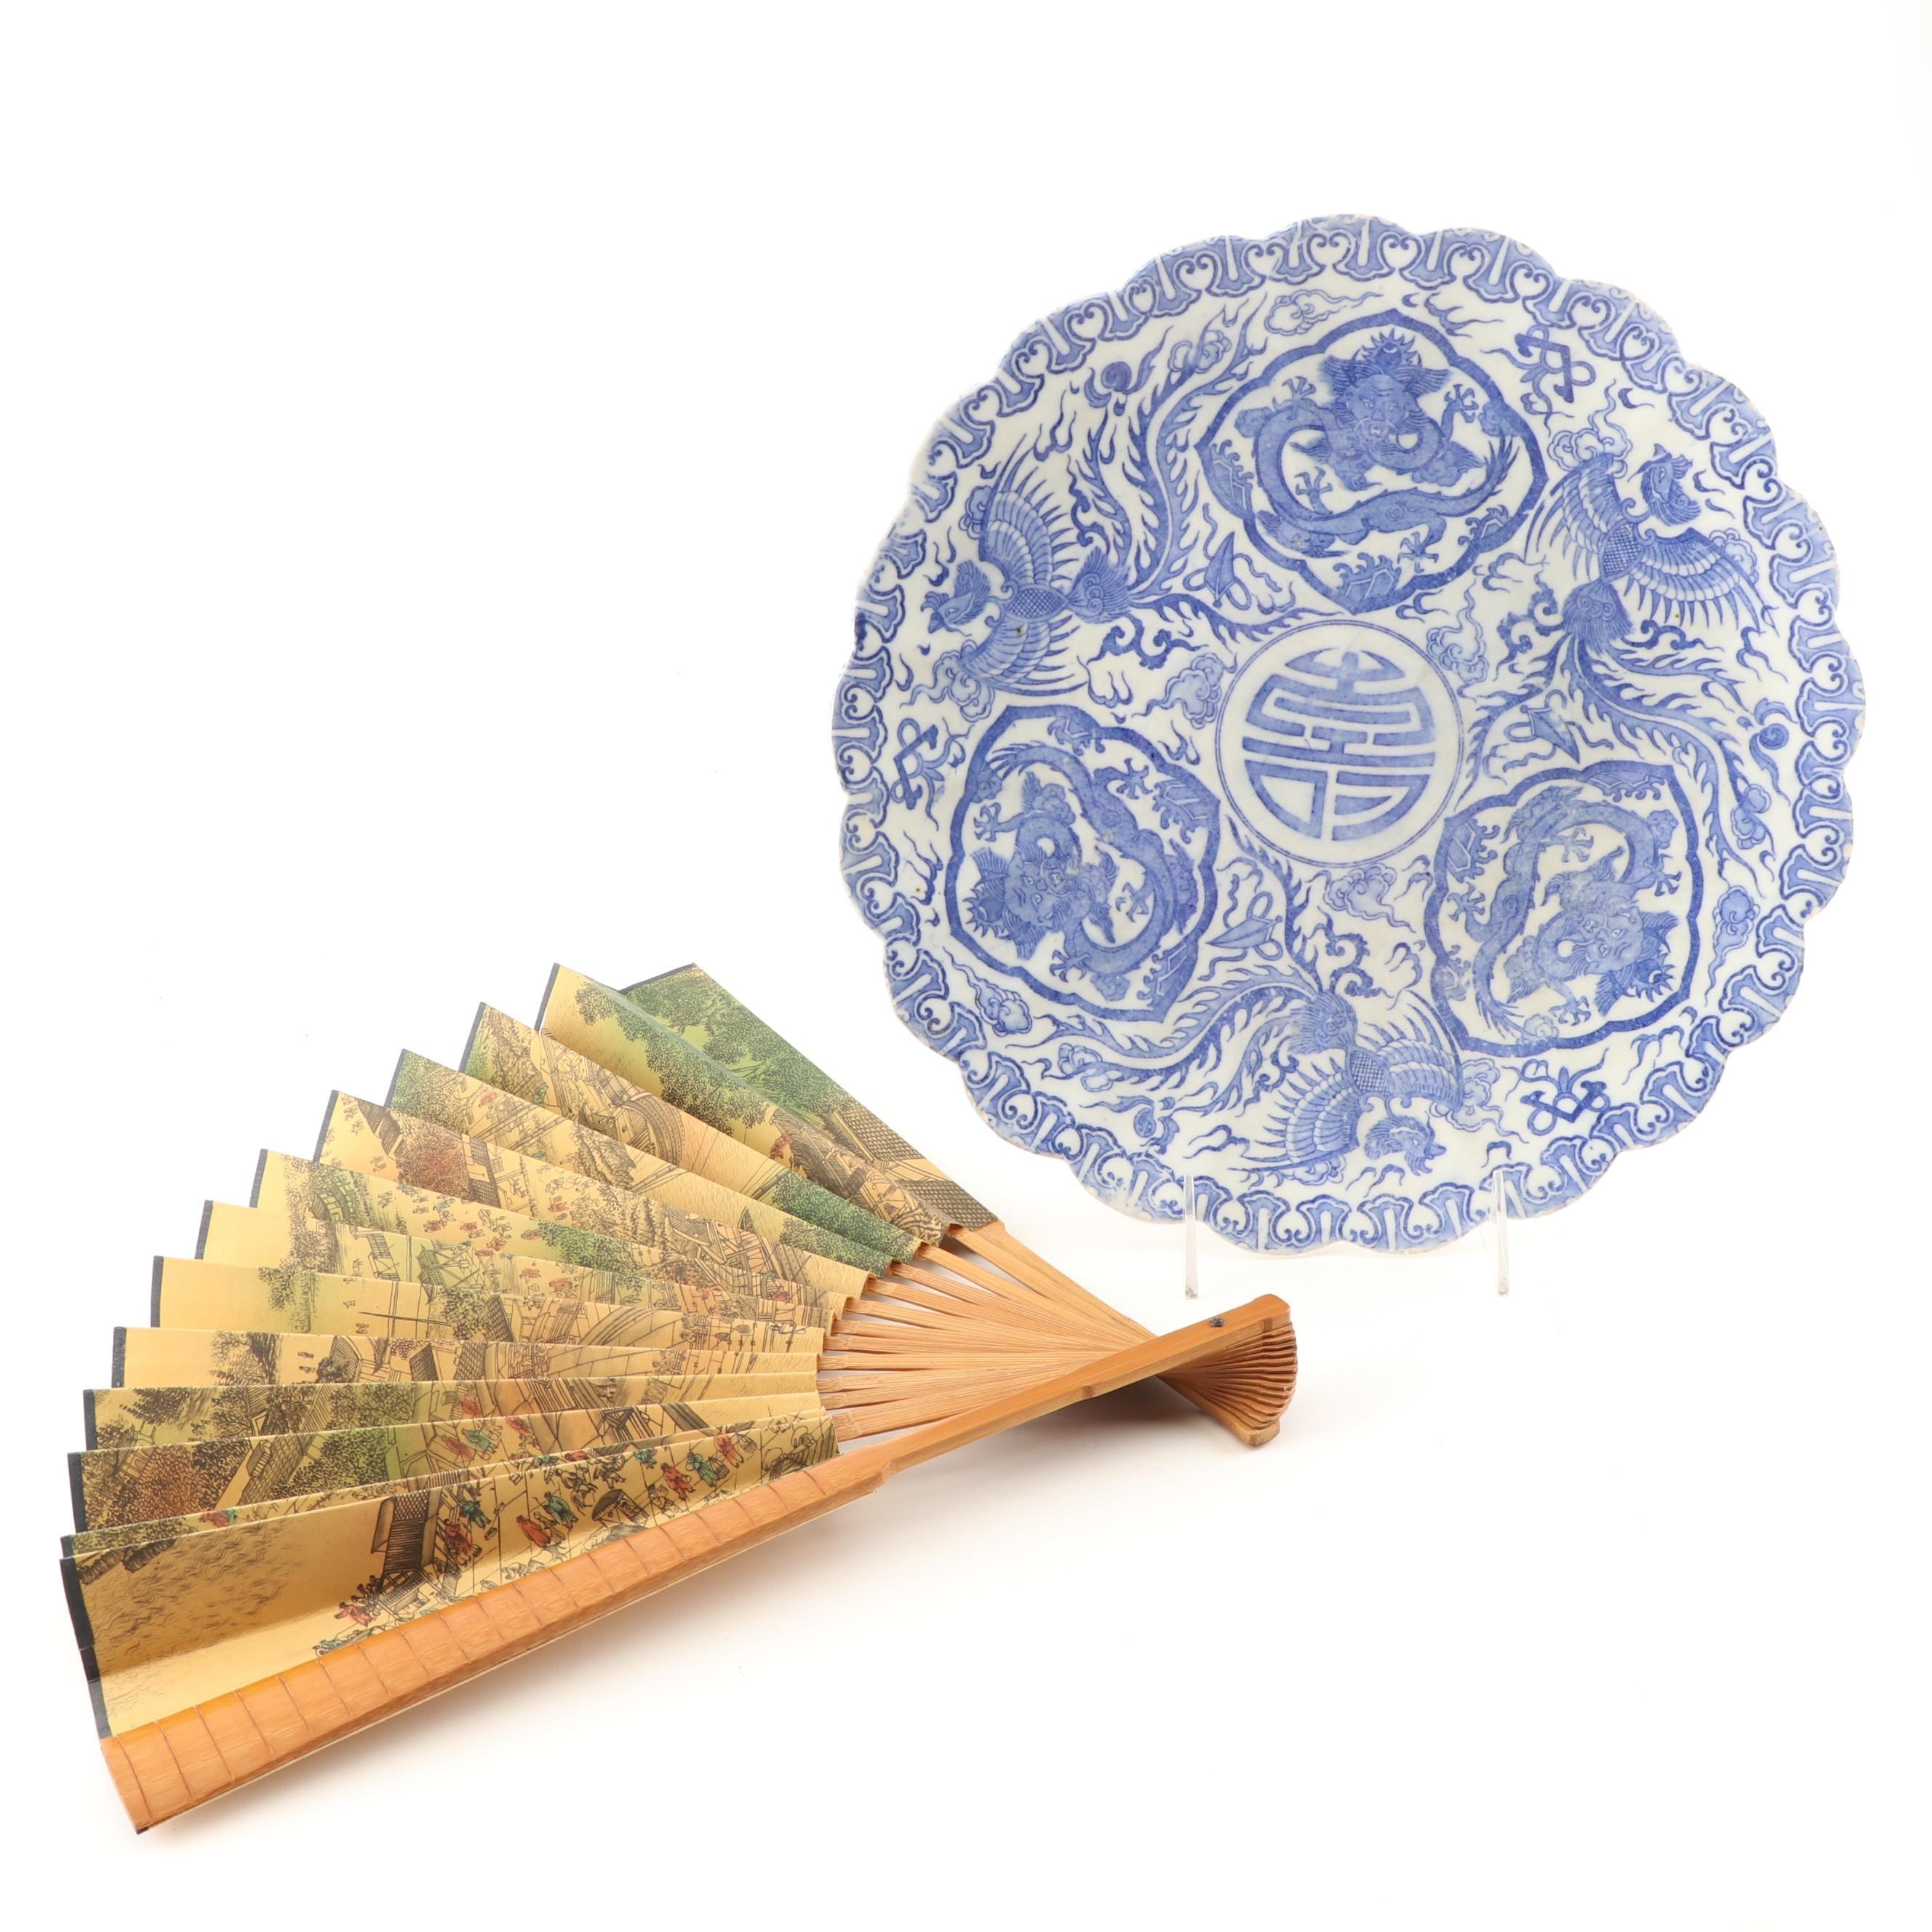 Chinese Blue and White Porcelain Charger and Hand-Painted Silk Fan